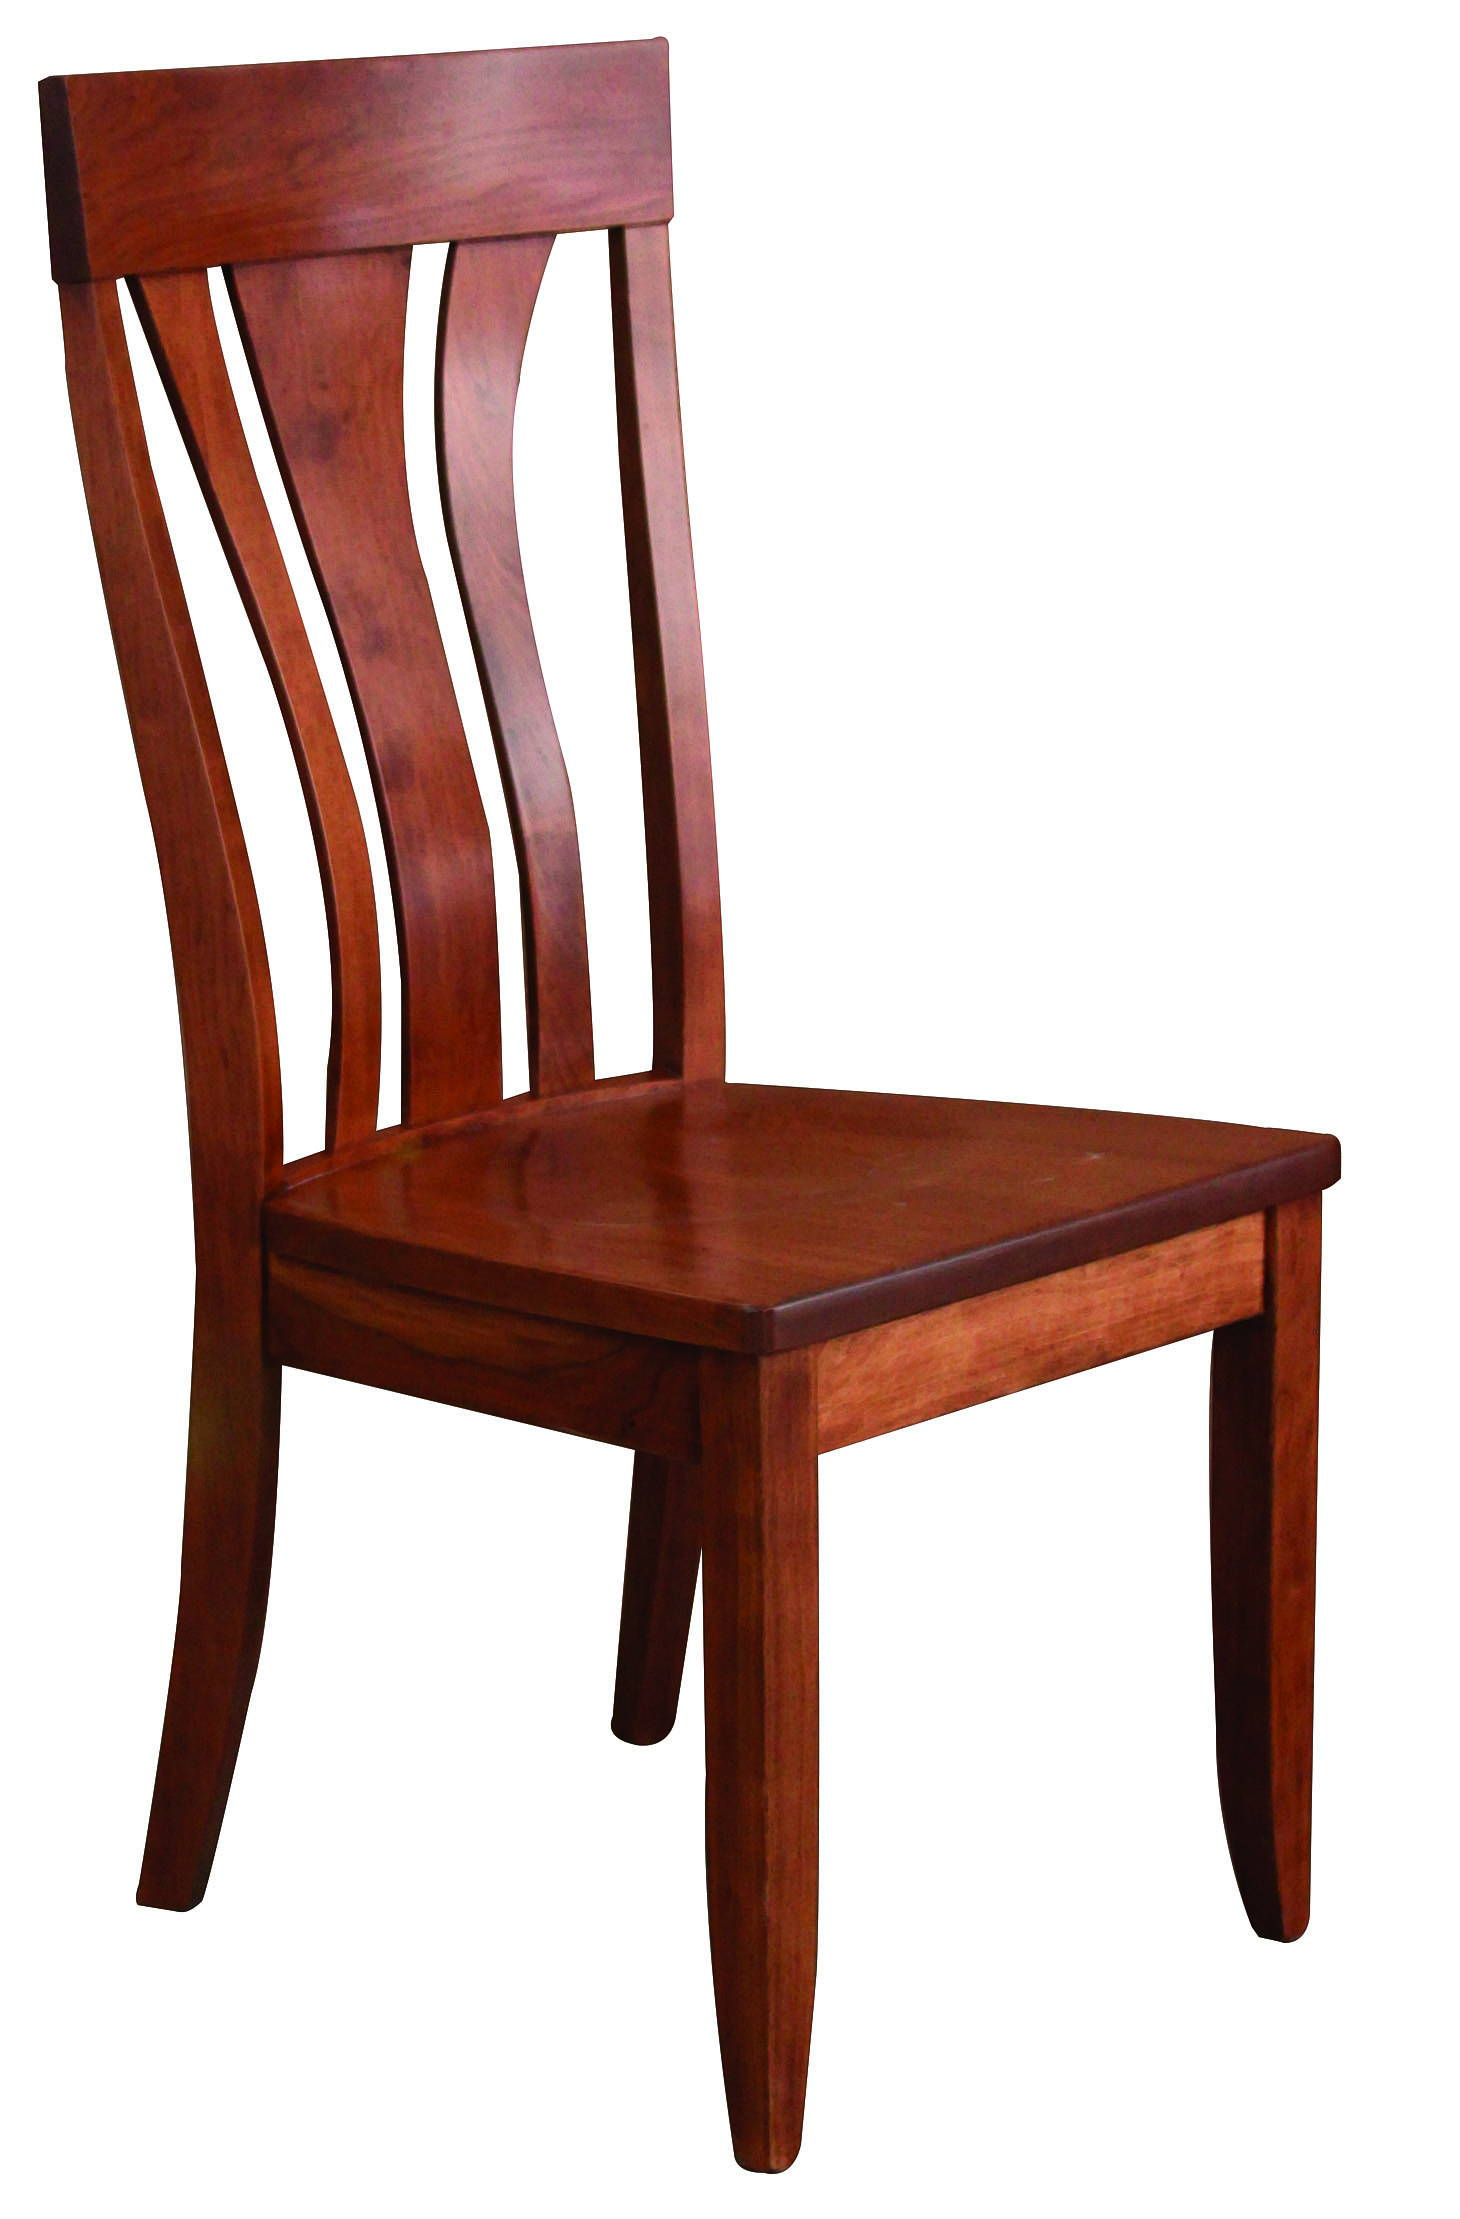 Hudson Solid Wood, Handcrafted Kitchen Chair or DIning Chair from Harvest Home Interiors Amish Furniture